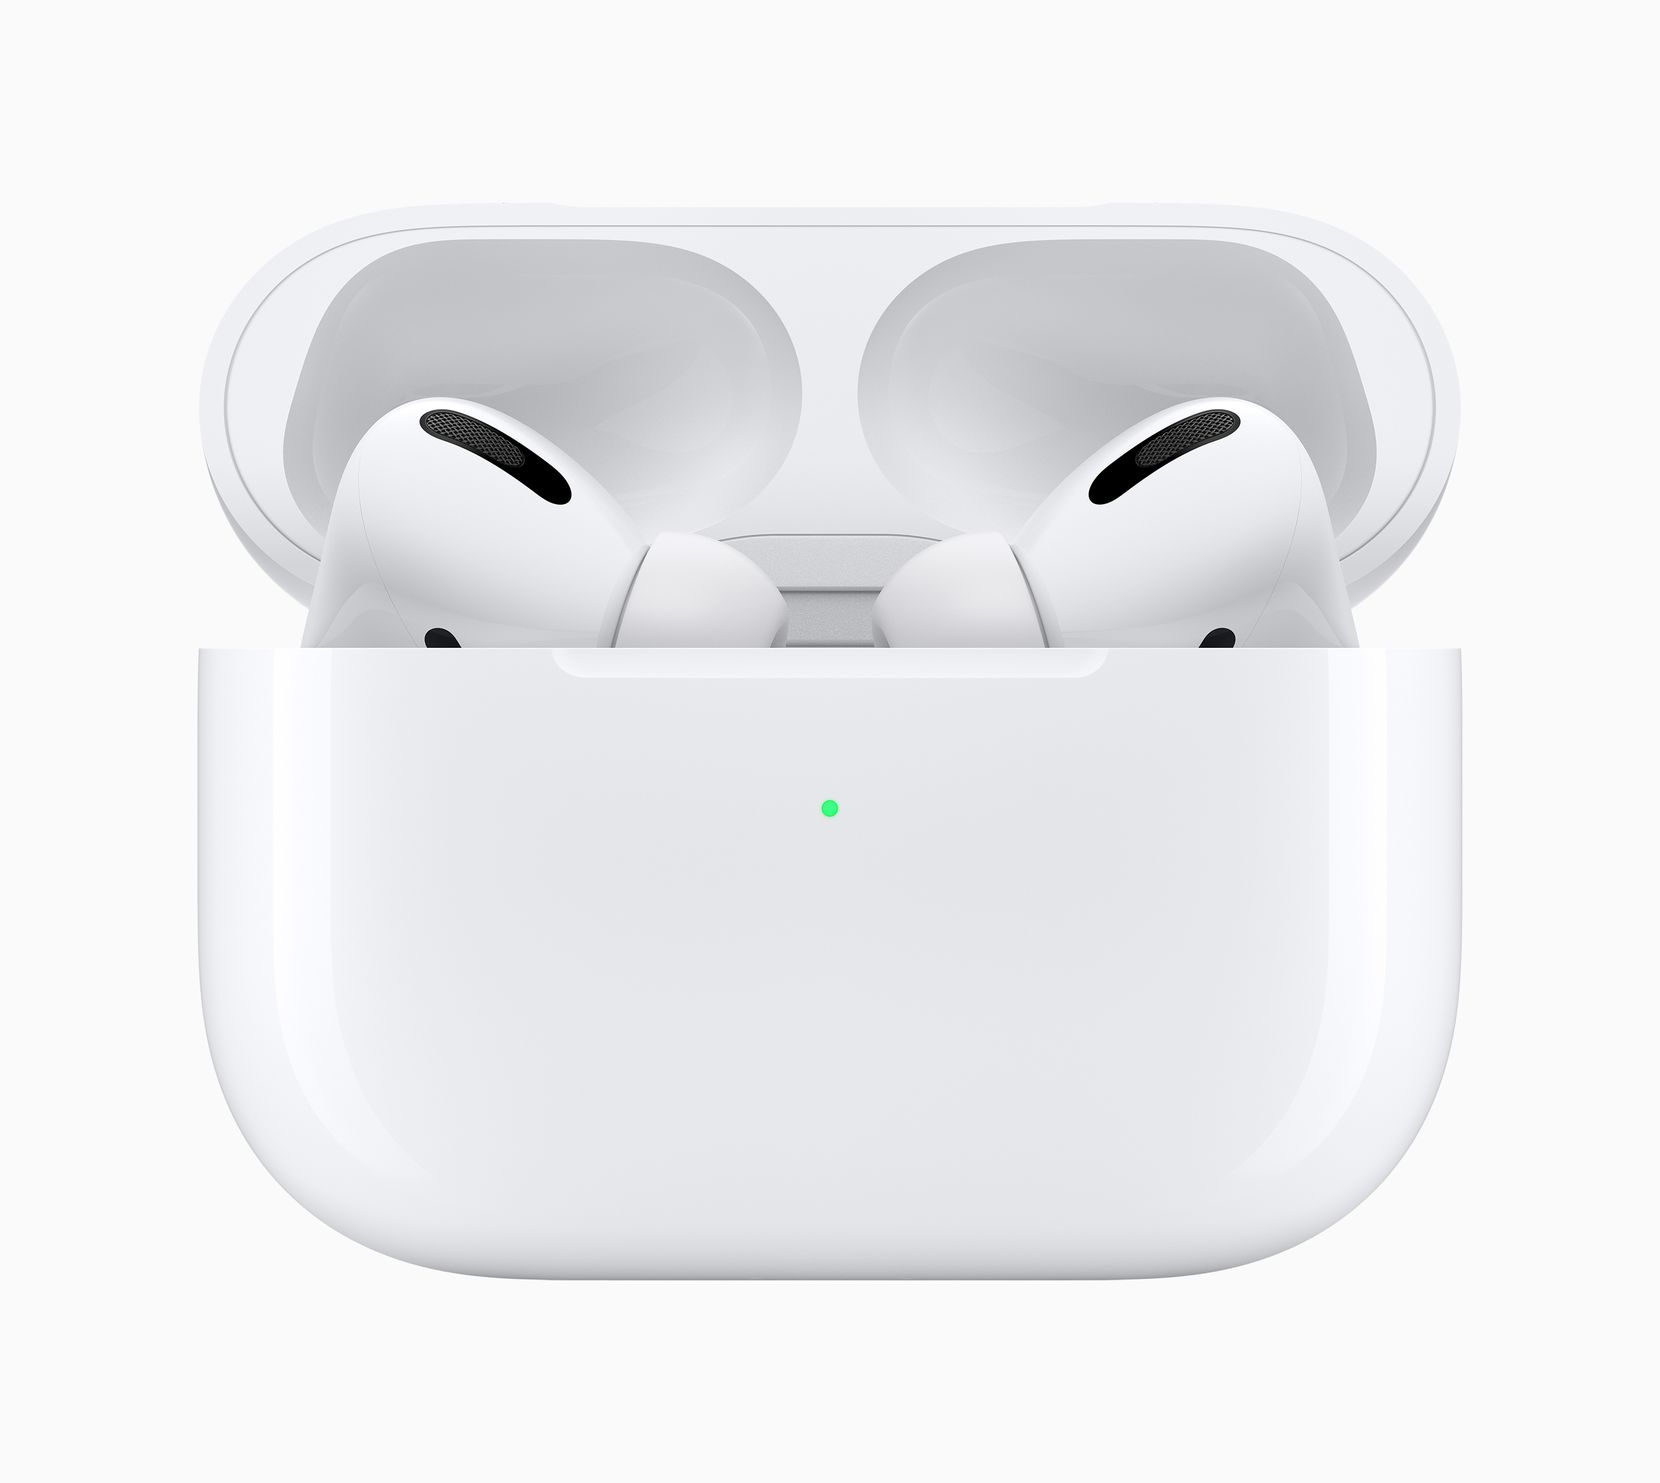 Apple's AirPods Pro with charging case.